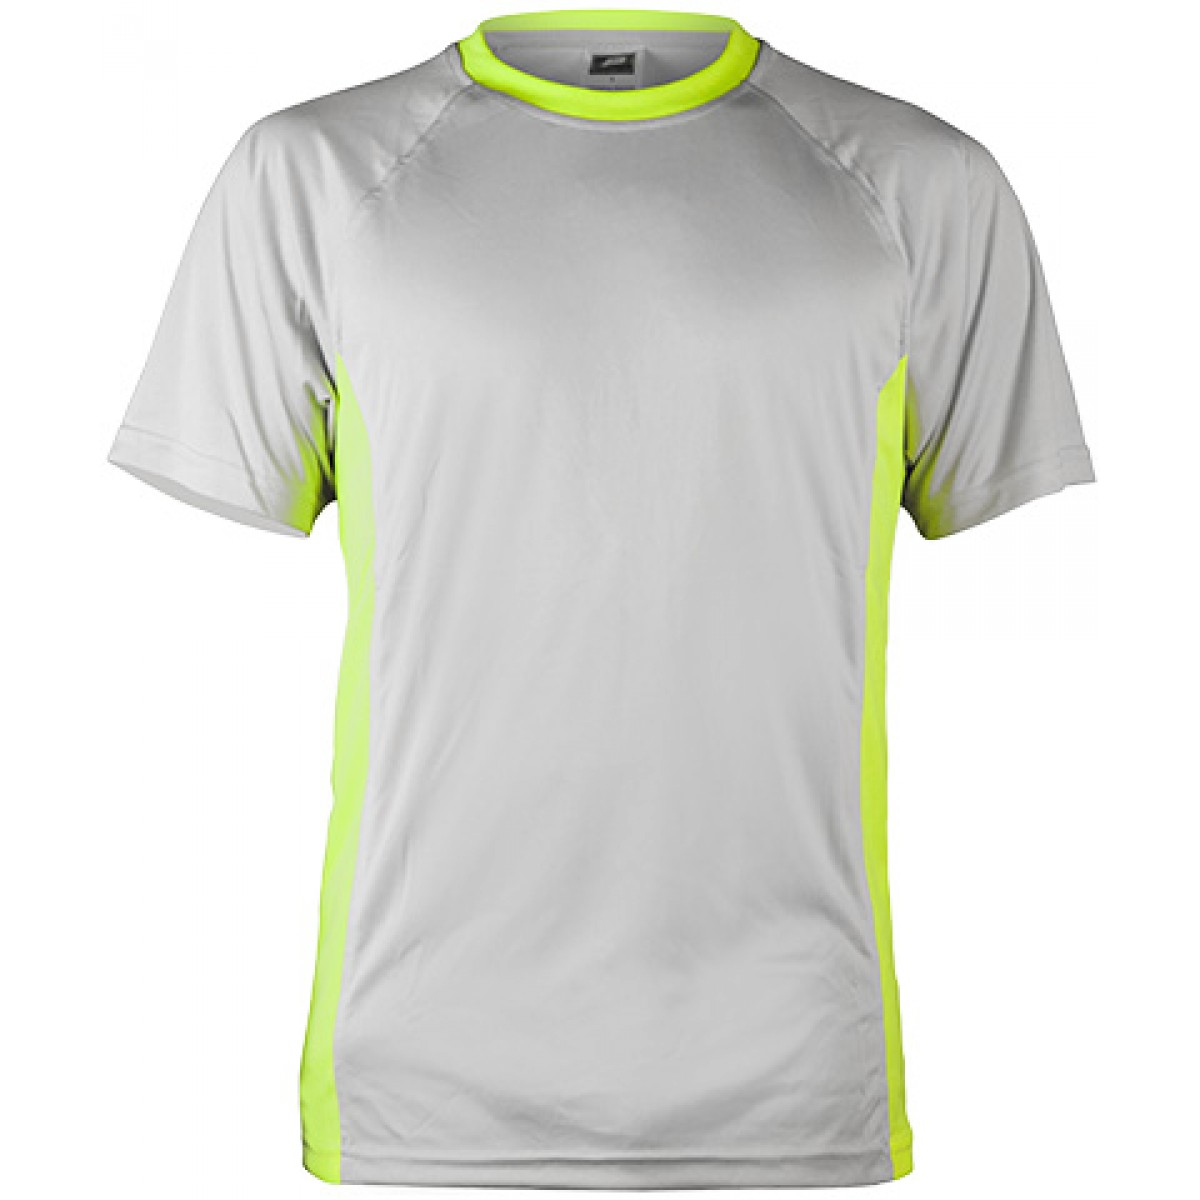 Short Sleeve Performance Fit with Neon Mesh Side Insert